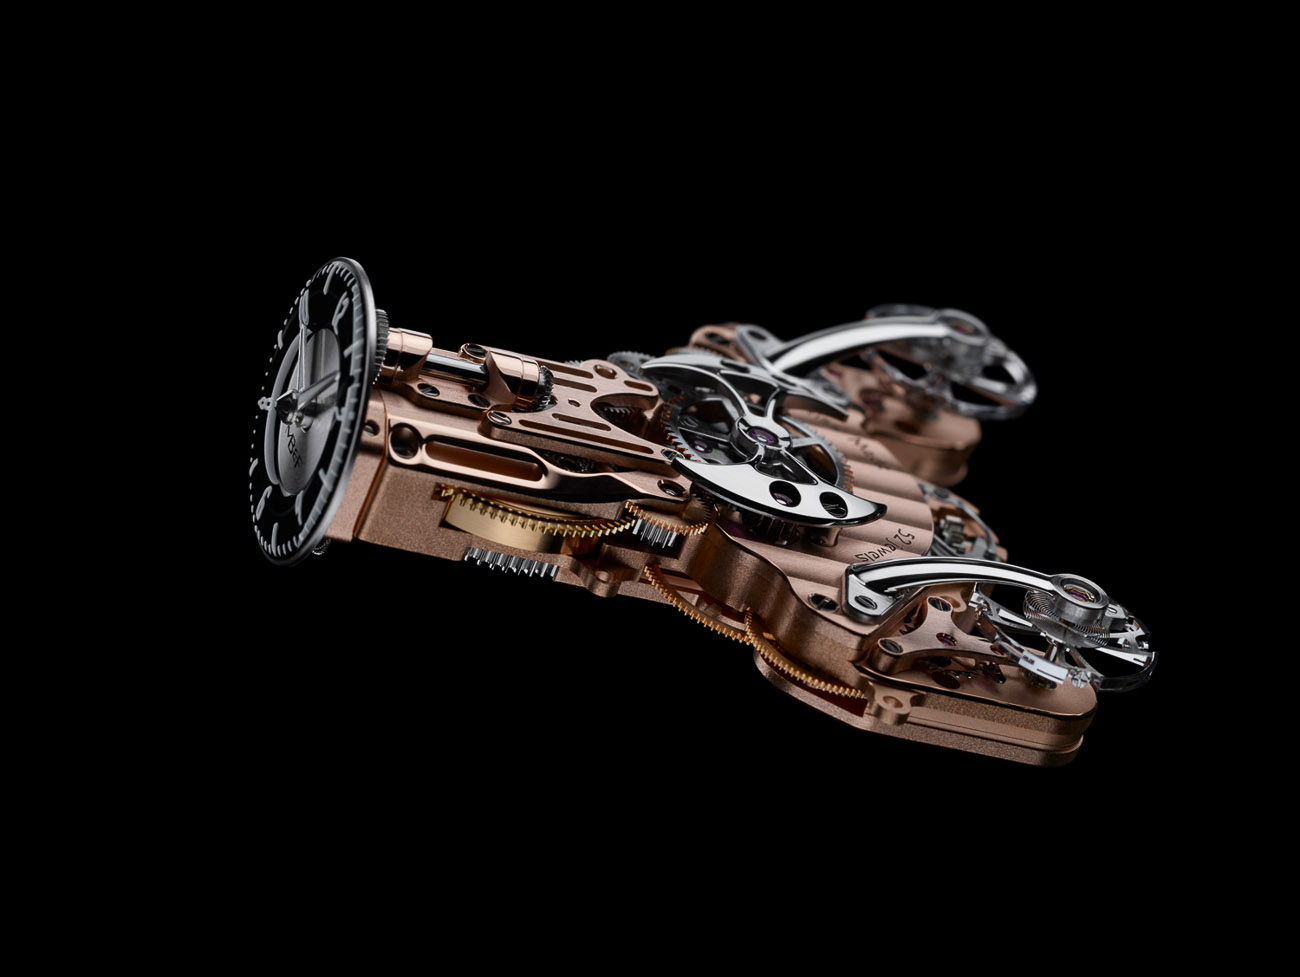 MB&F Horological Machine N 9 Flow